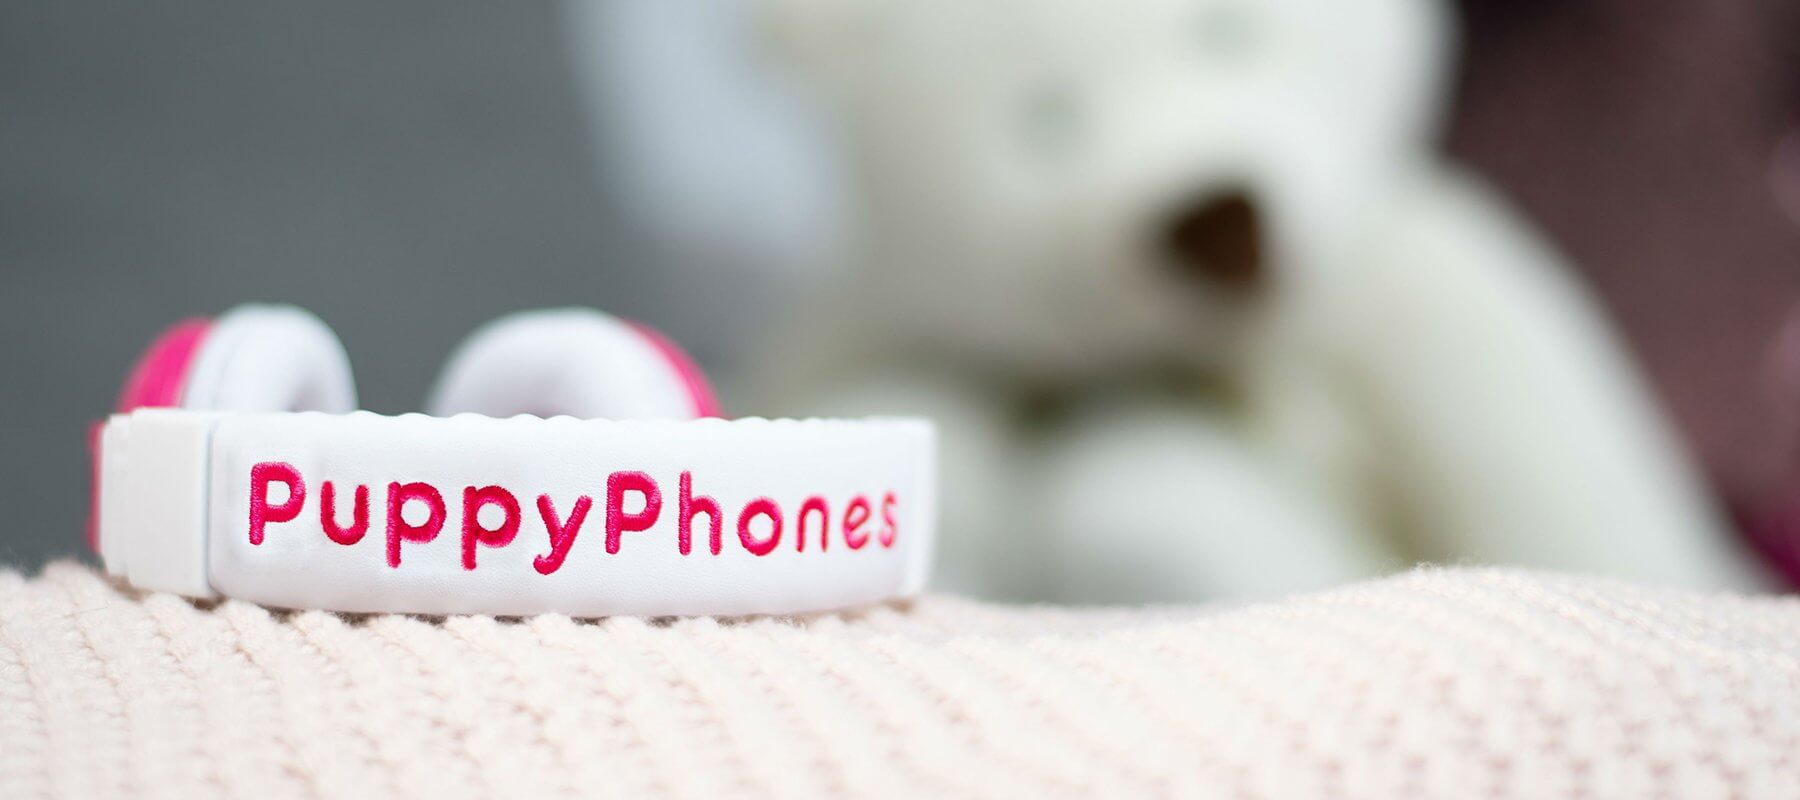 Introducing PuppyPhones - The World's First Safe Headphones for Pets!